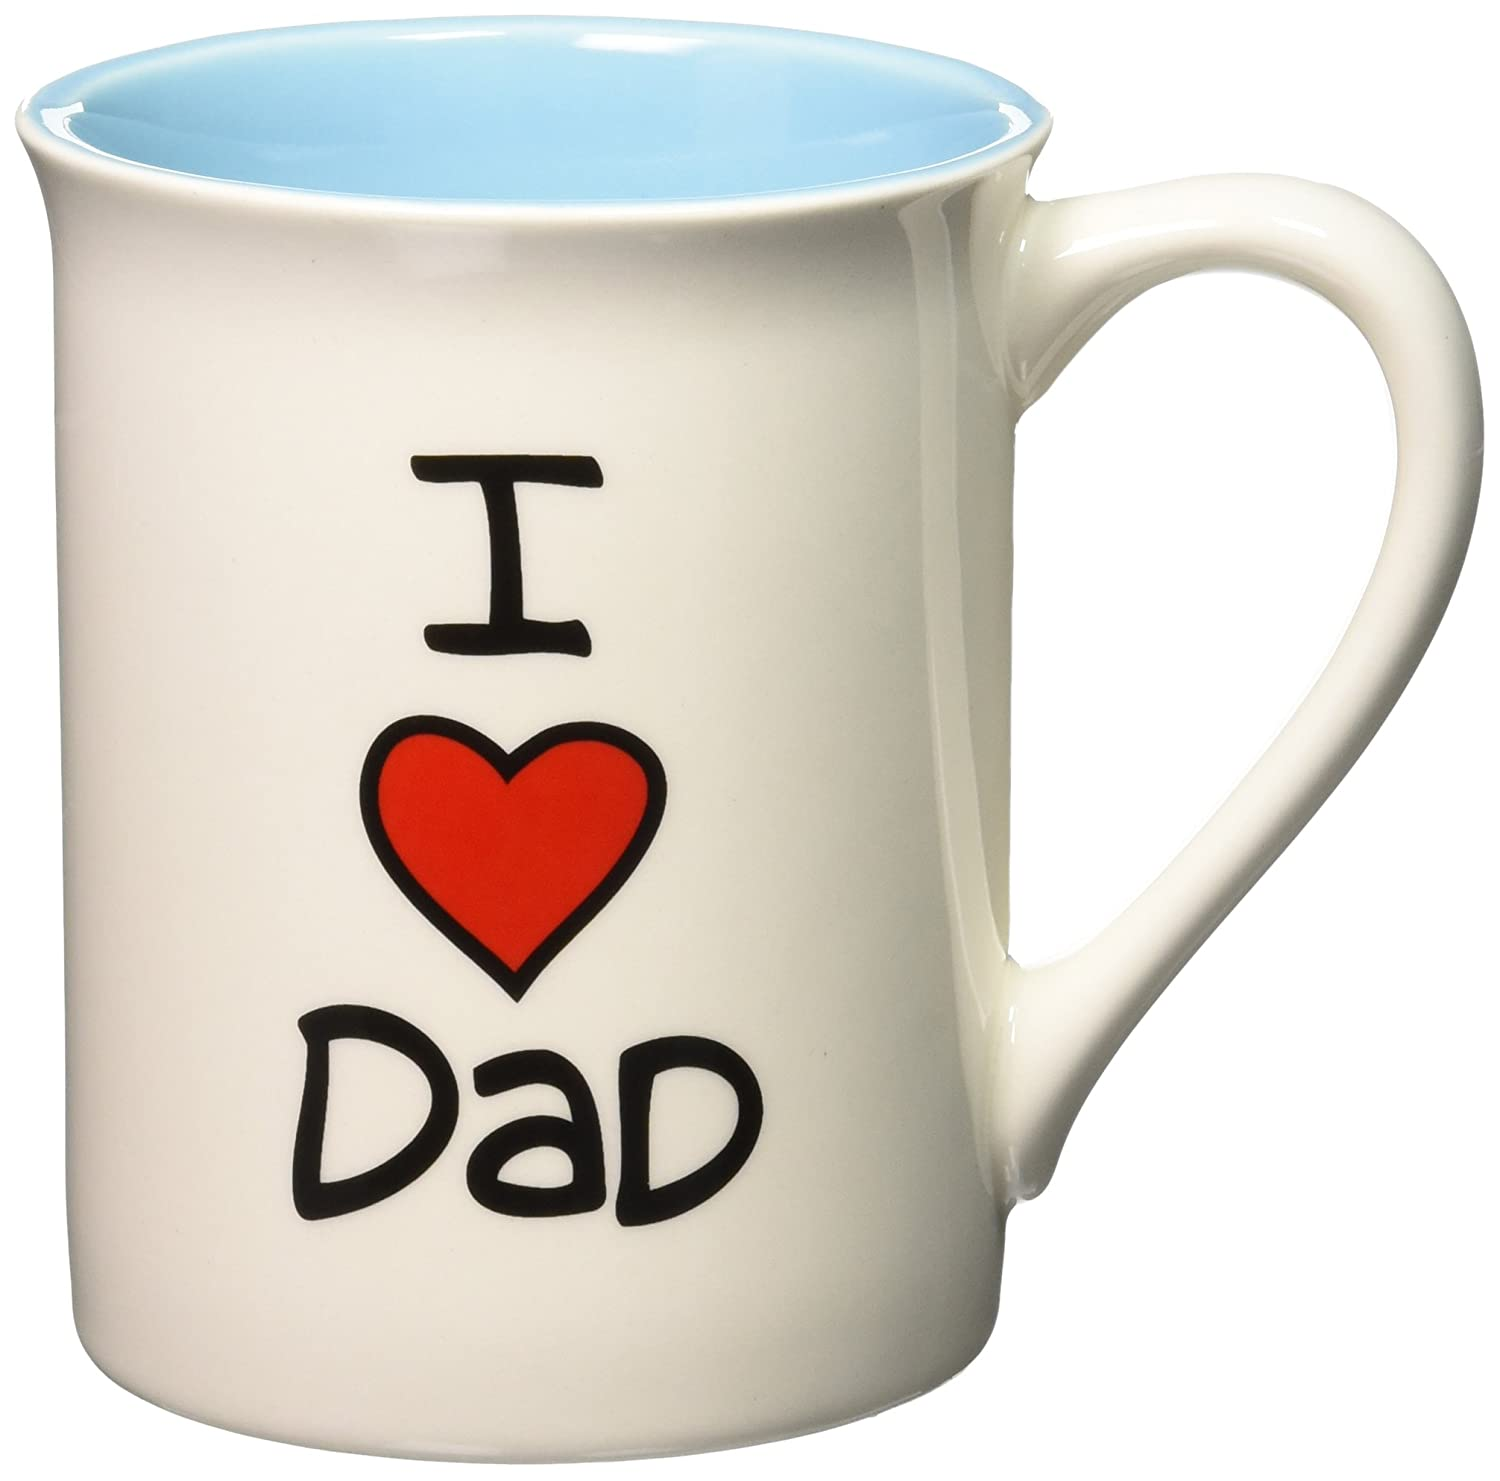 I heart dad coffee mug